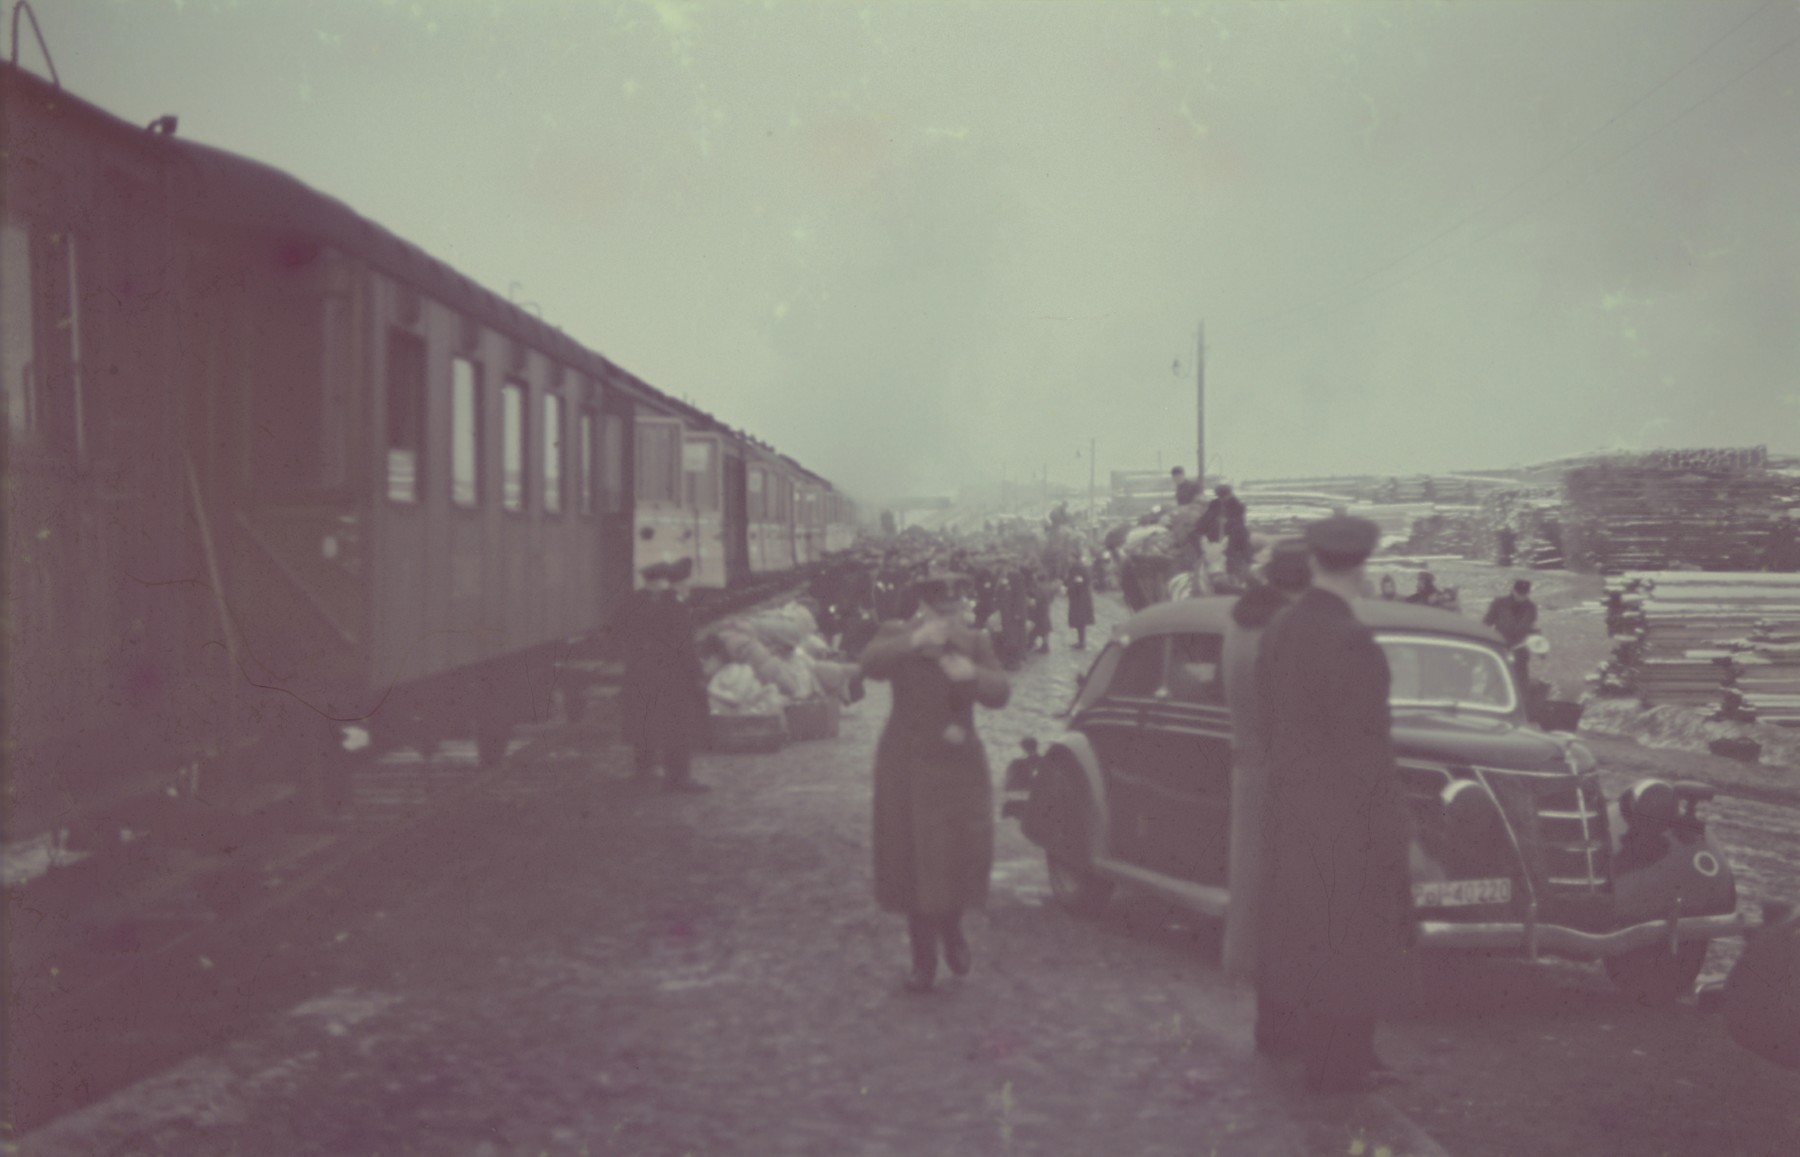 "View at the railroad siding in the Lodz ghetto where Jews prepare to board a passenger train during a deportation action from the ghetto.  Original German caption: ""Judenaussiedlung"" (Jewish resettlement), #117."